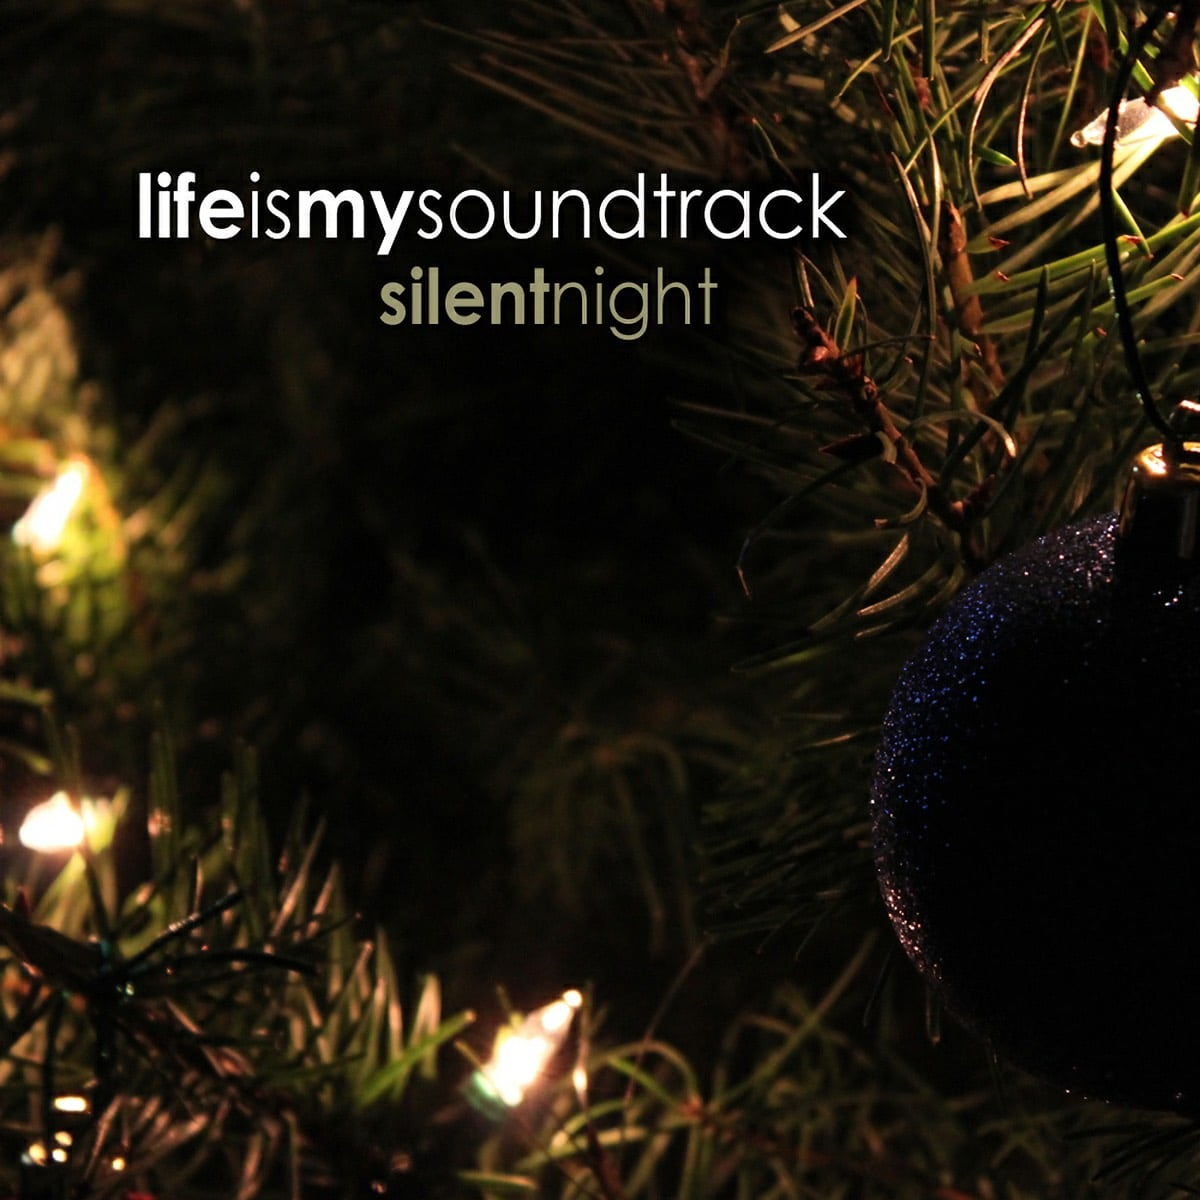 The album Silent Night by Life Is My Soundtrack - A new, dynamic take on the classic holiday favorite, featuring over 58 minutes of music to help relax and inspire you during the busy holiday season